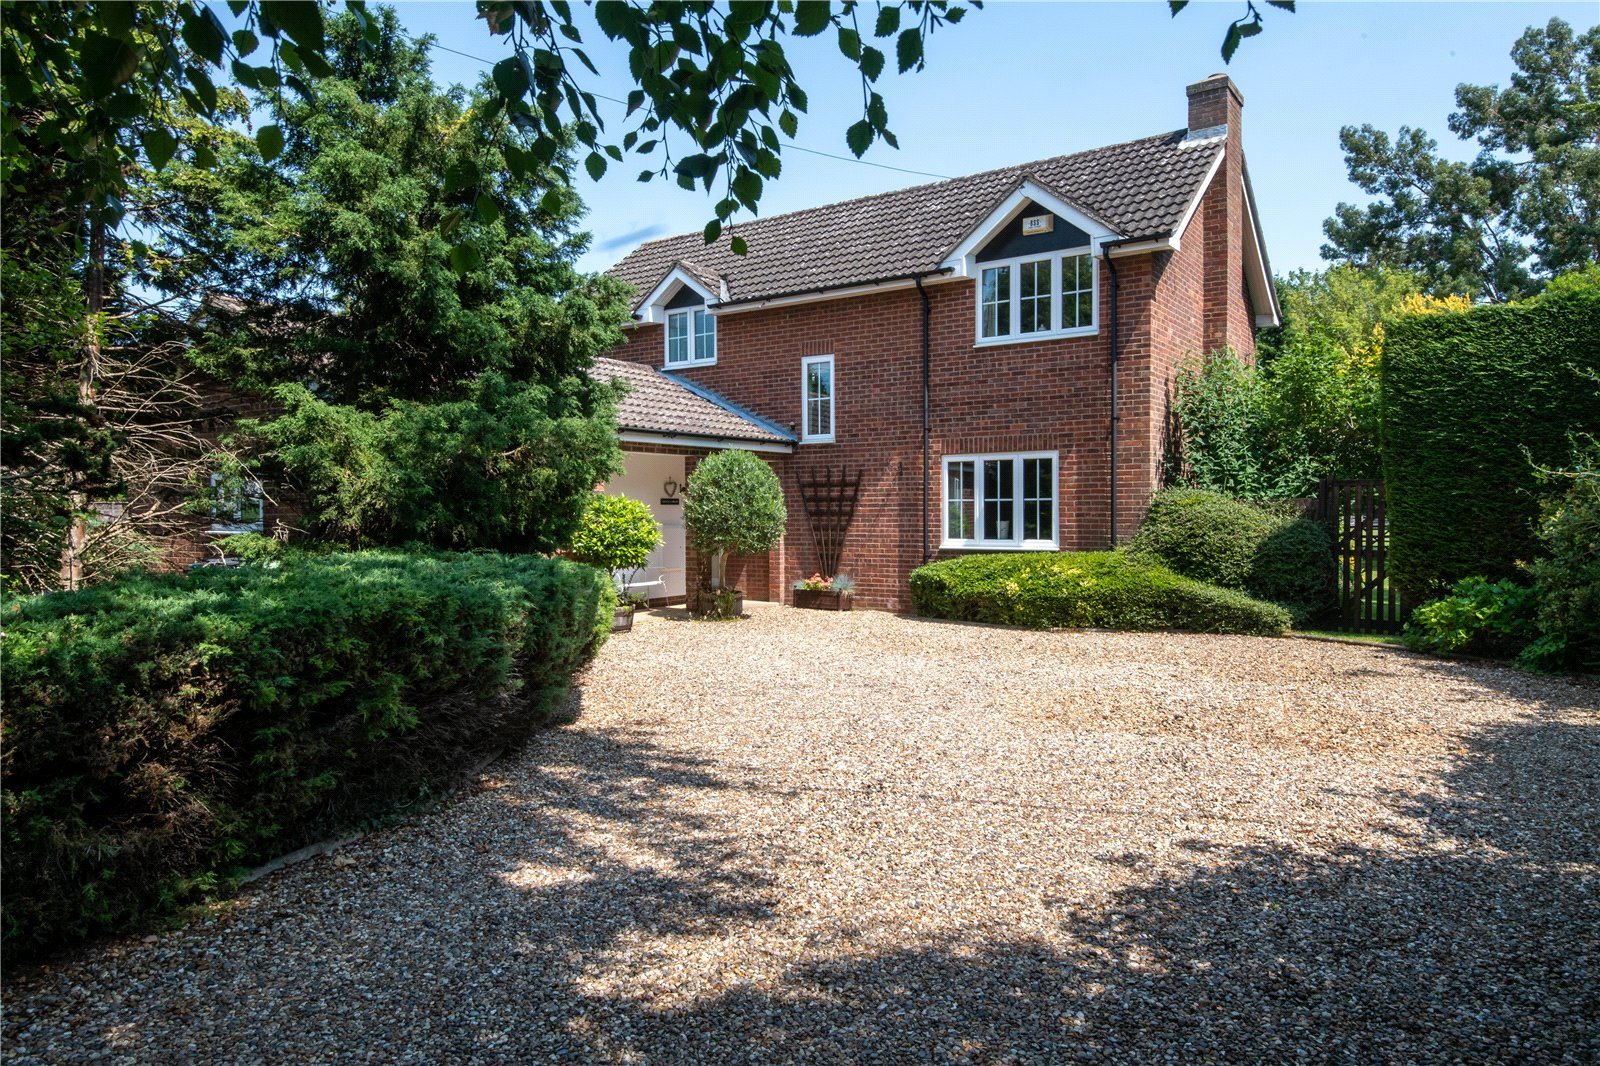 5 bed house for sale in Rookery Road, Wyboston - Property Image 1